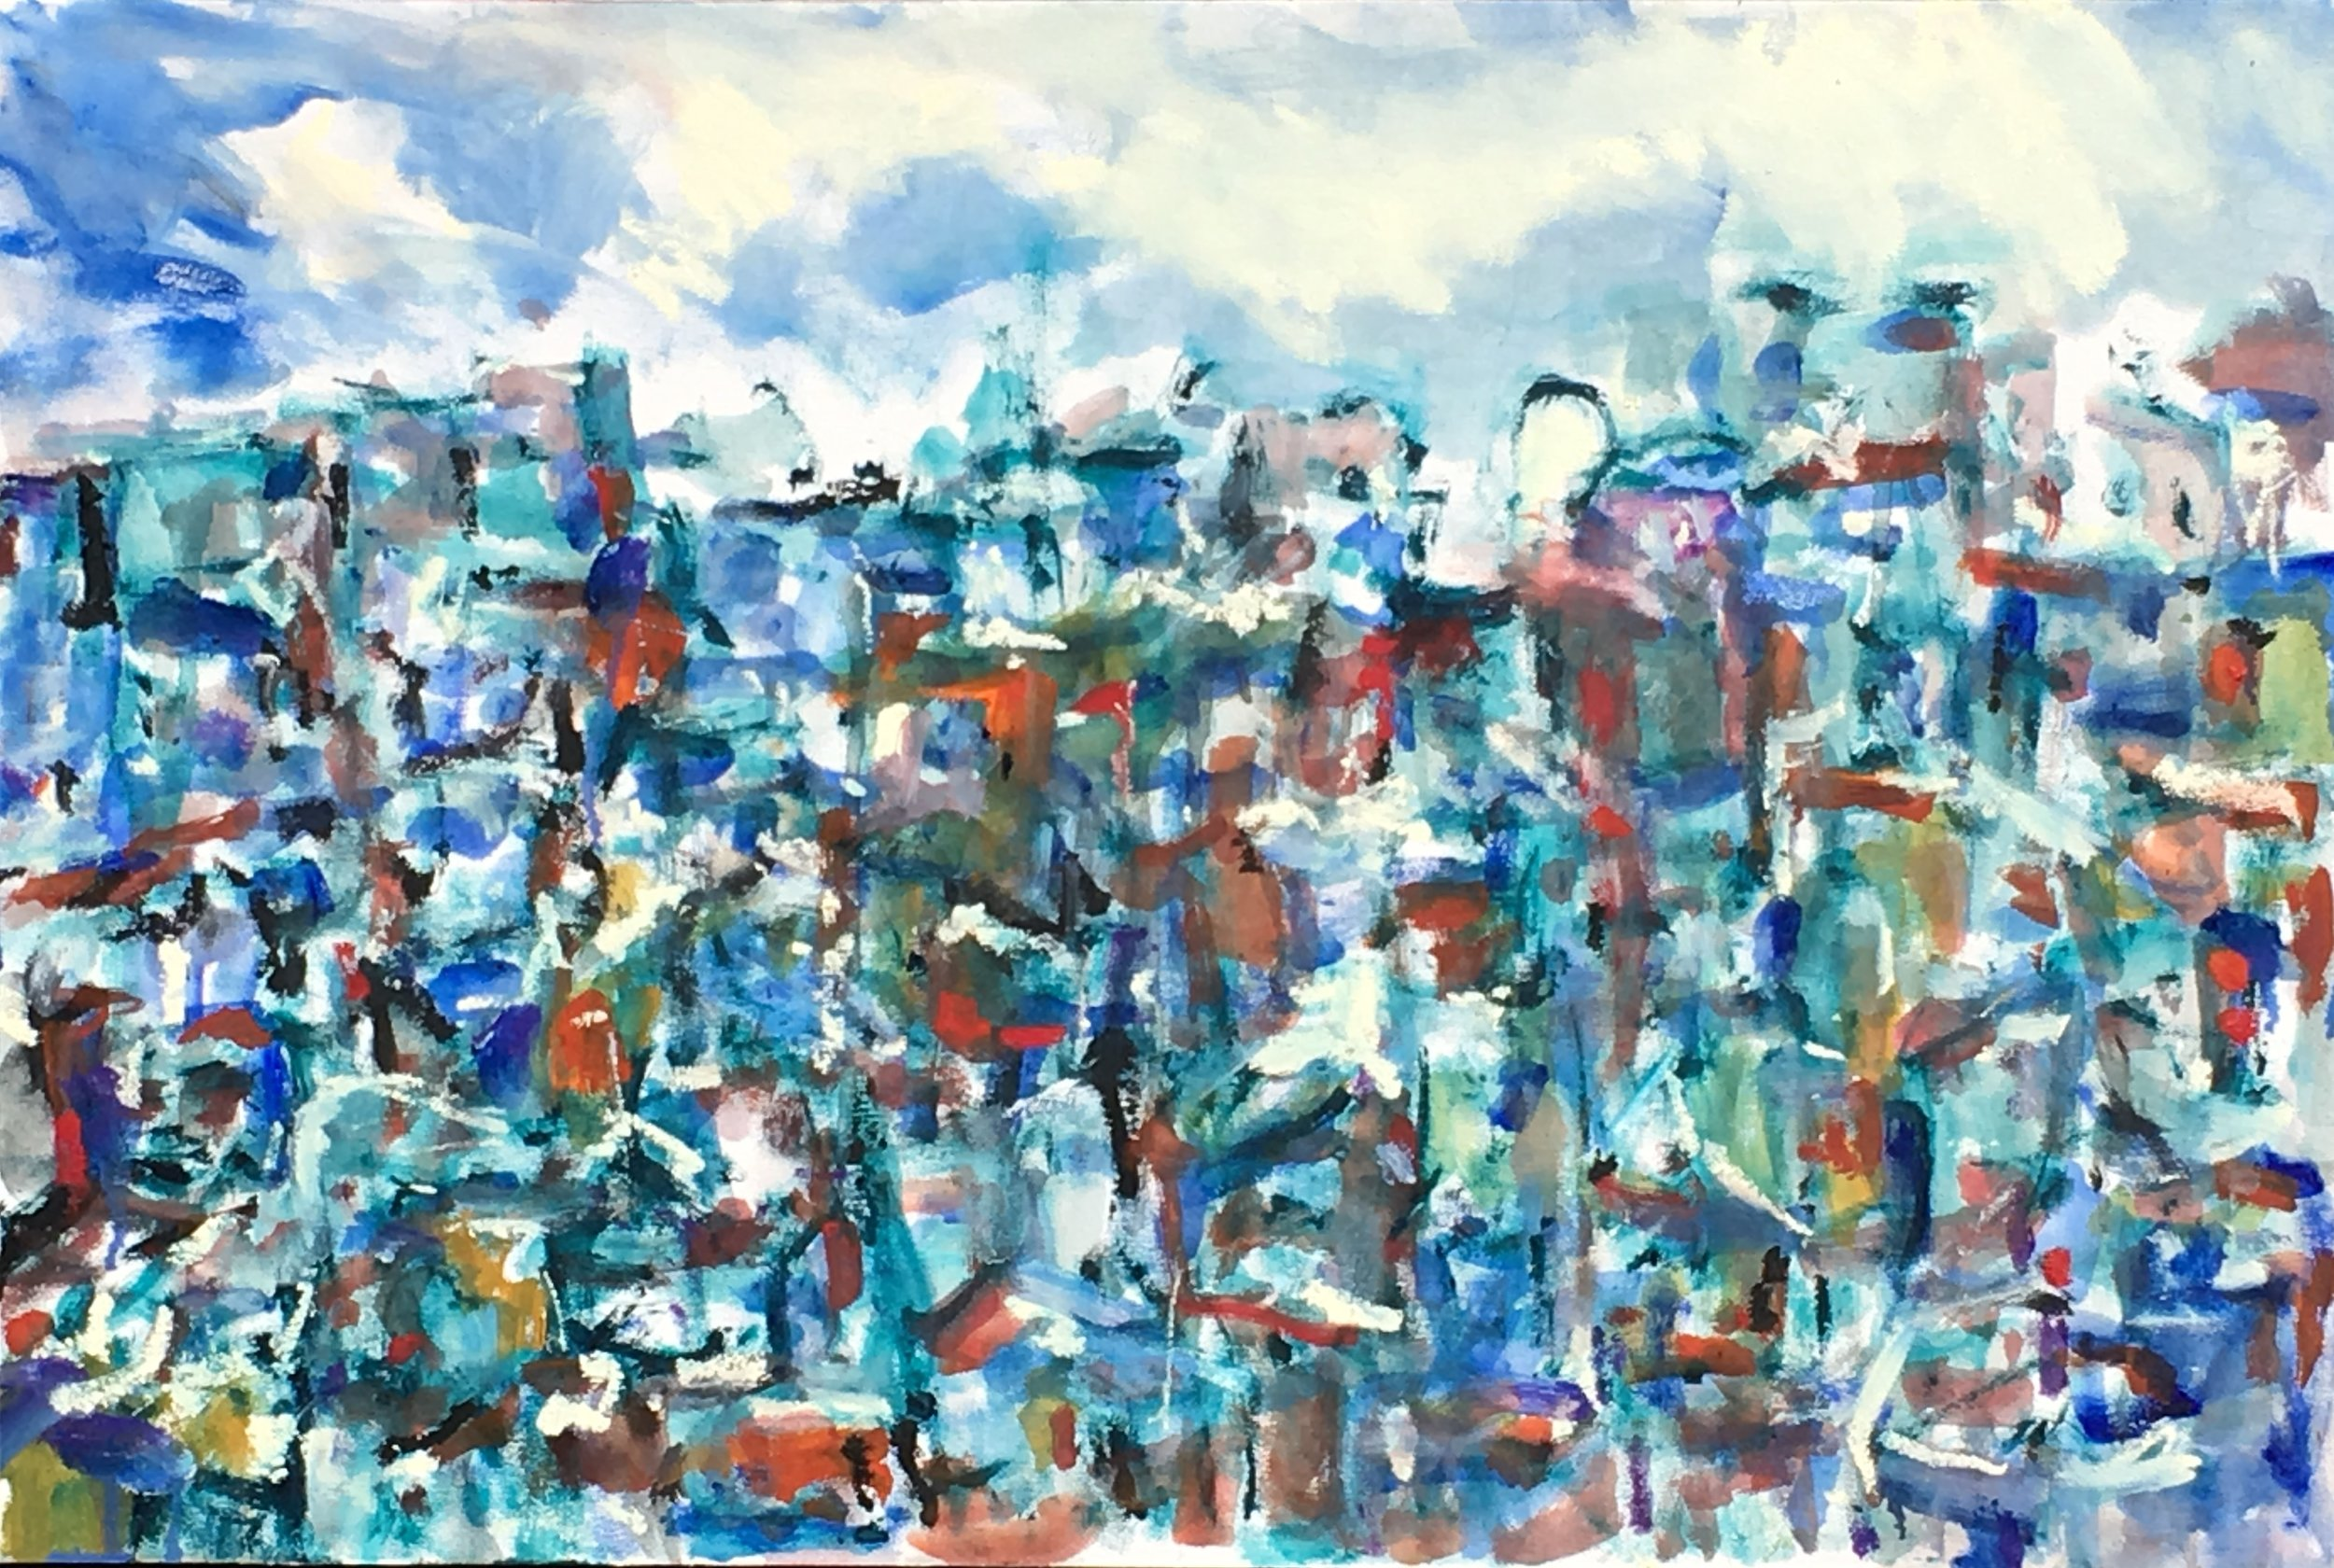 Kristine Flannery_ View of My City - Original 24 x 36 Oil on Canvas.jpg